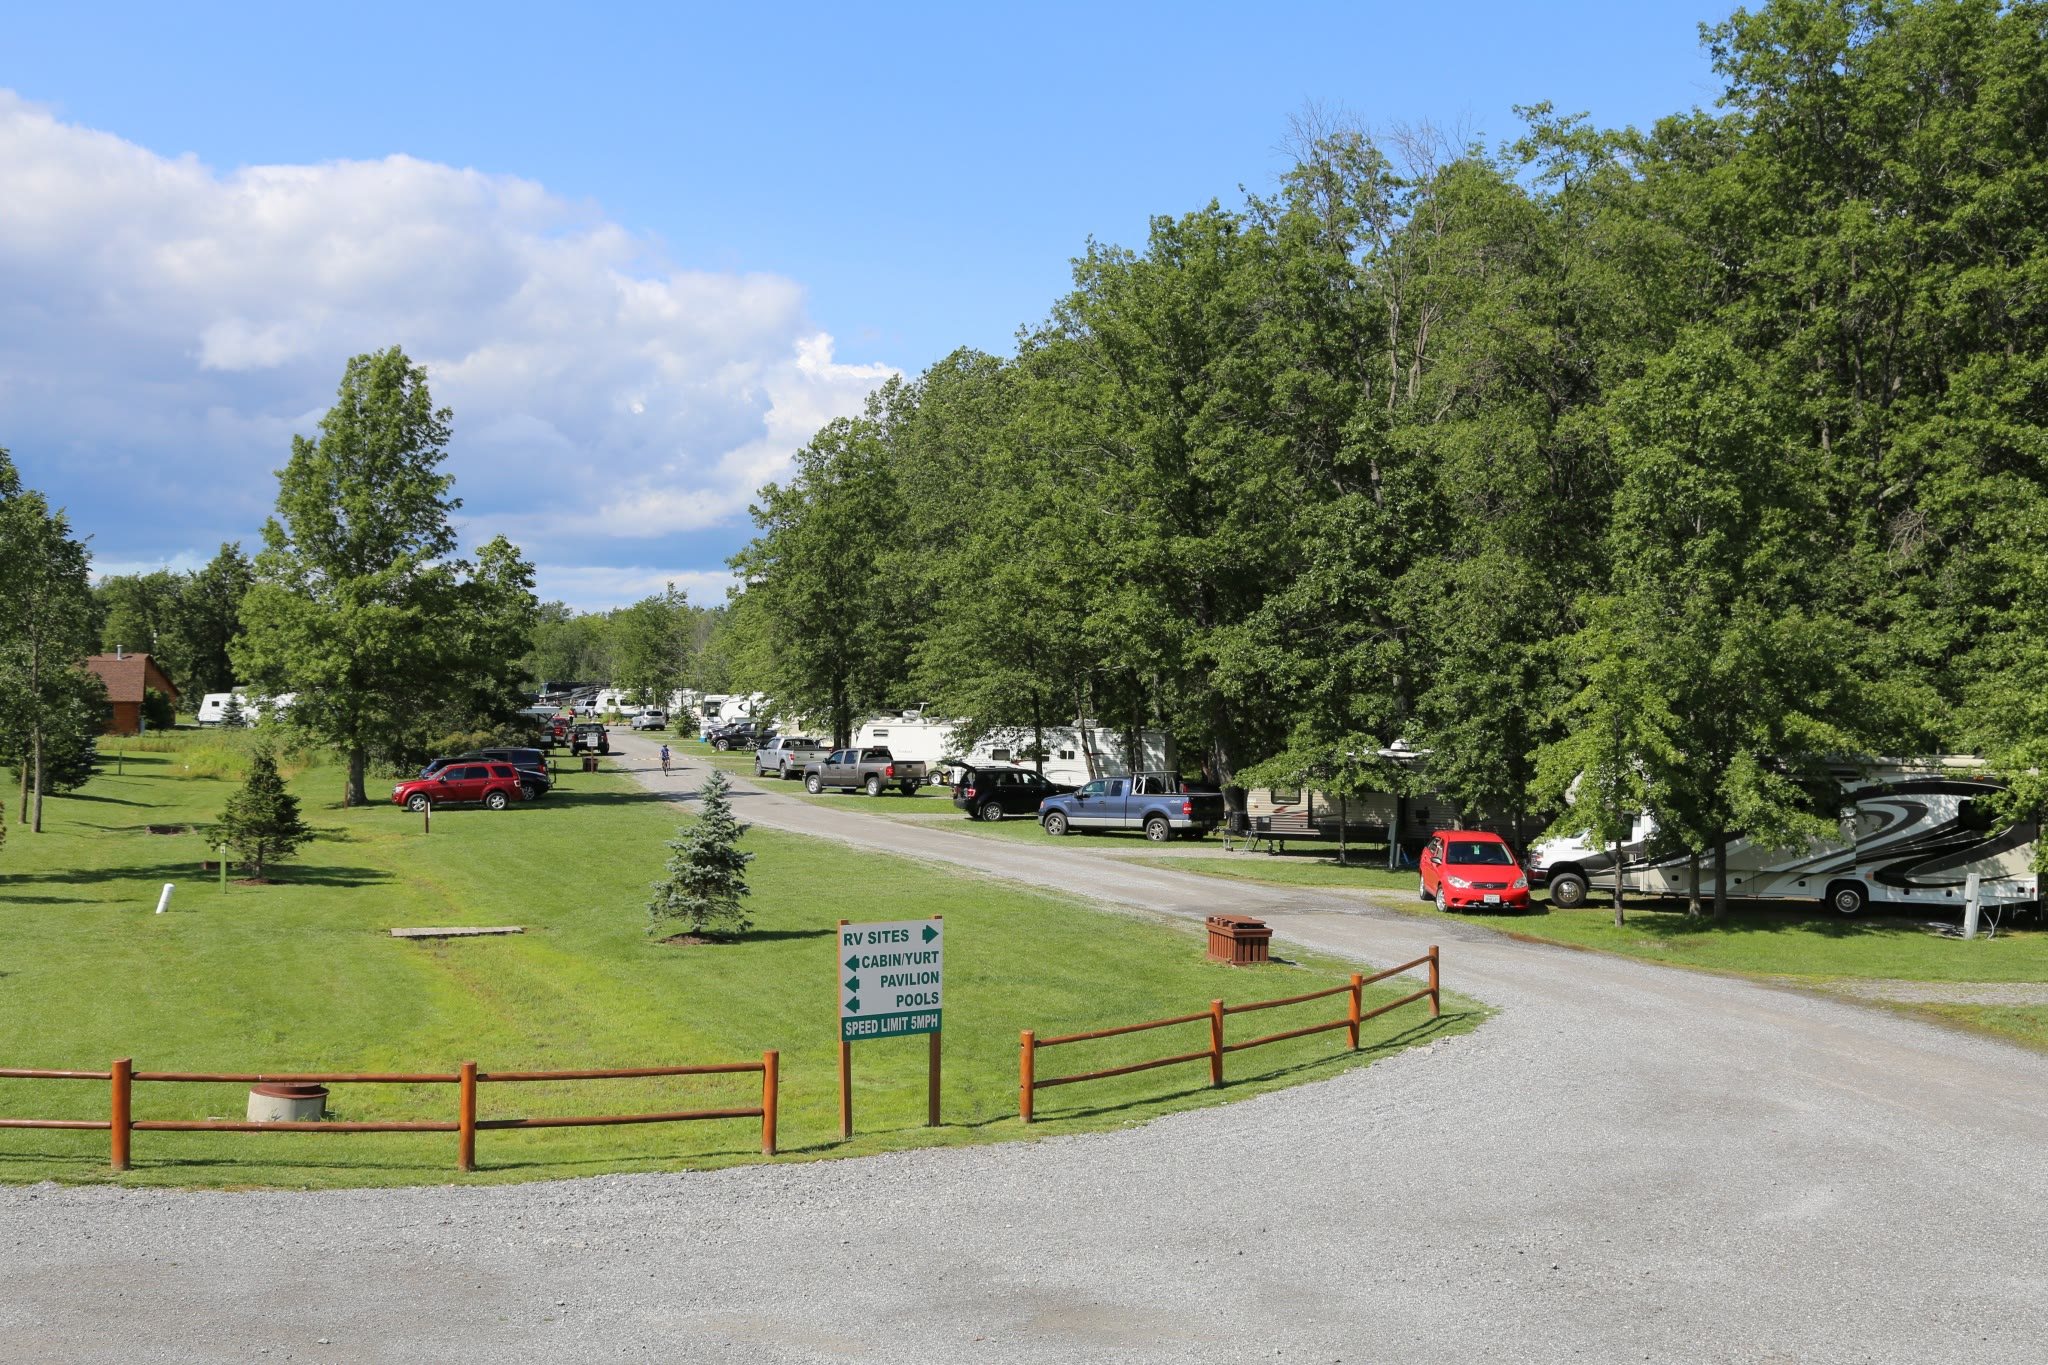 RVs and cars at Branches of Niagara Campground